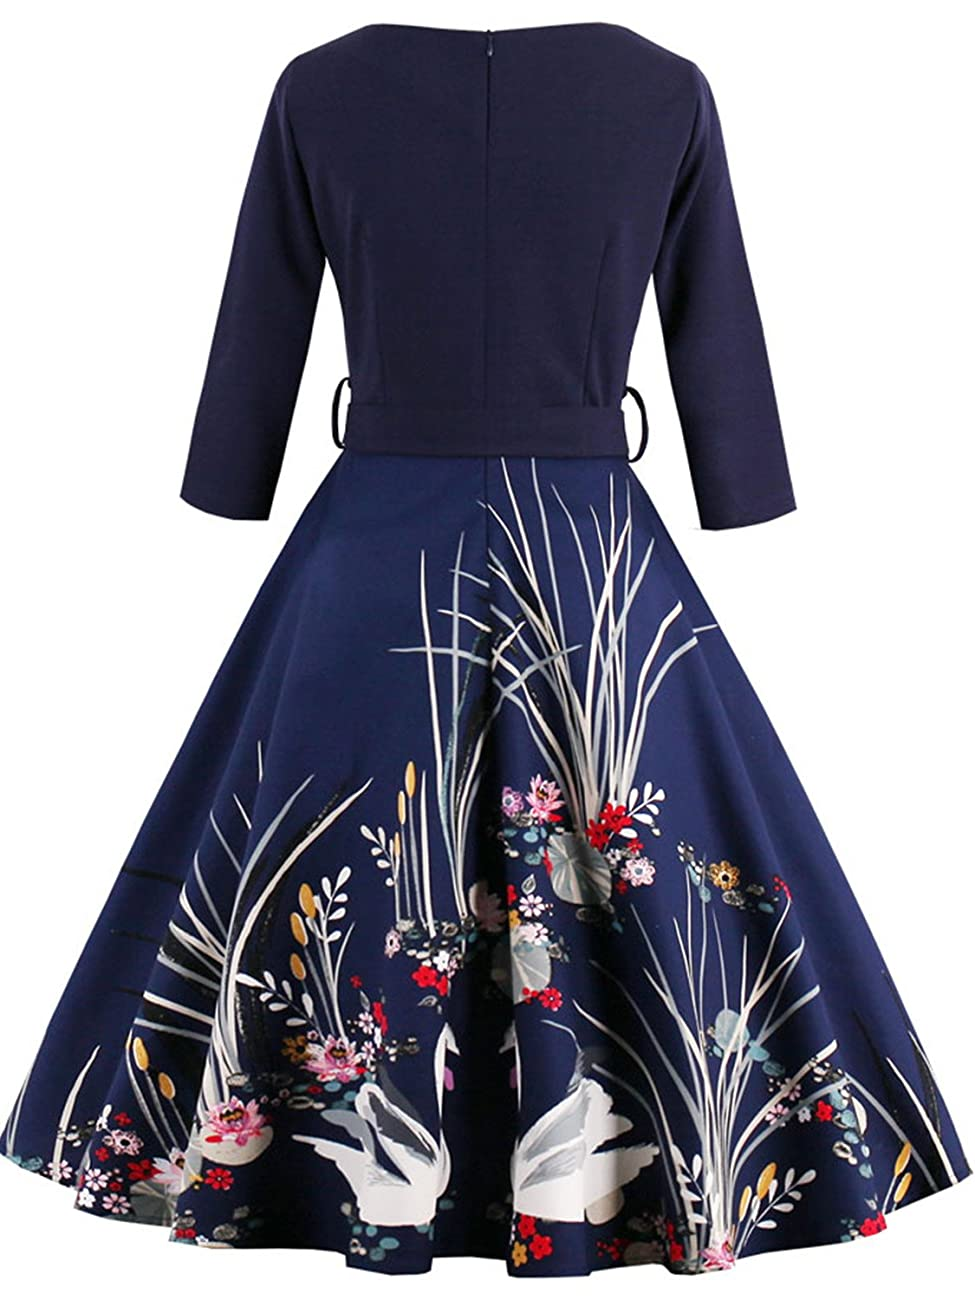 Babyonline Floral Vintage Women Dresses Half Sleeve 1950s Rockabilly Party Gown 5